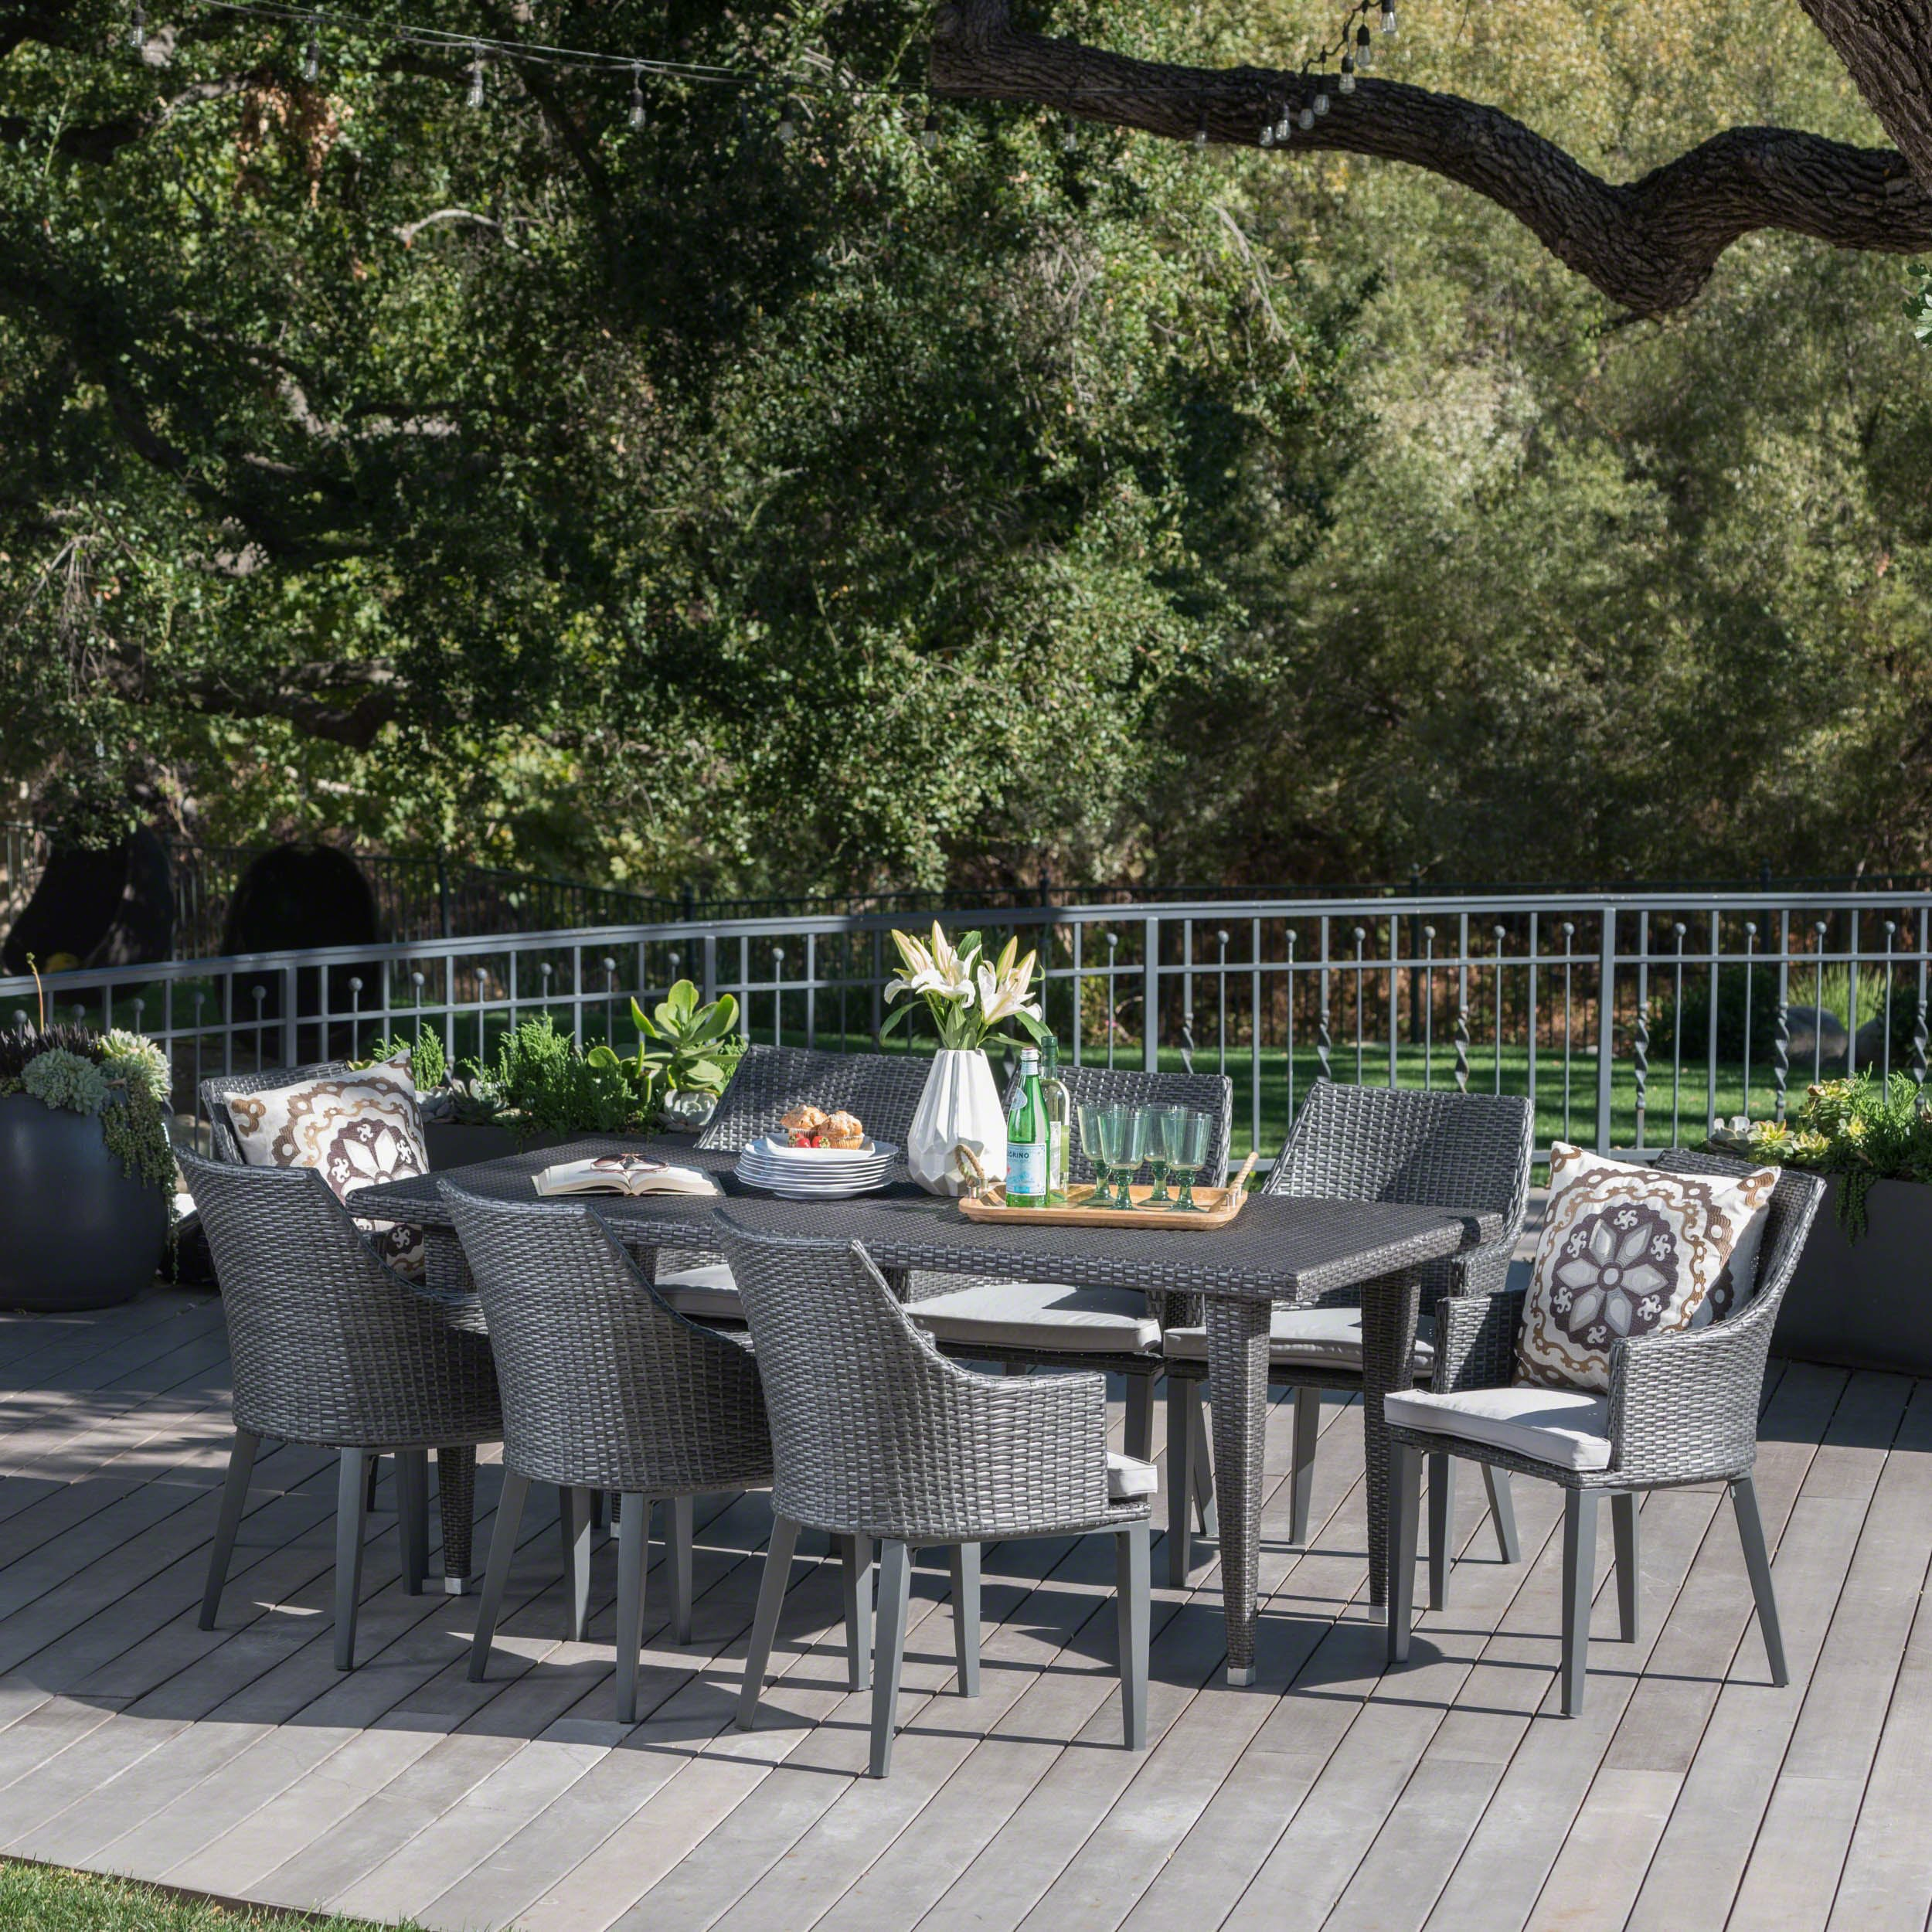 Lenny Outdoor 9 Piece Grey Wicker Rectangular Dining Set with Light Grey Water Resistant Cushions by Great Deal Furniture